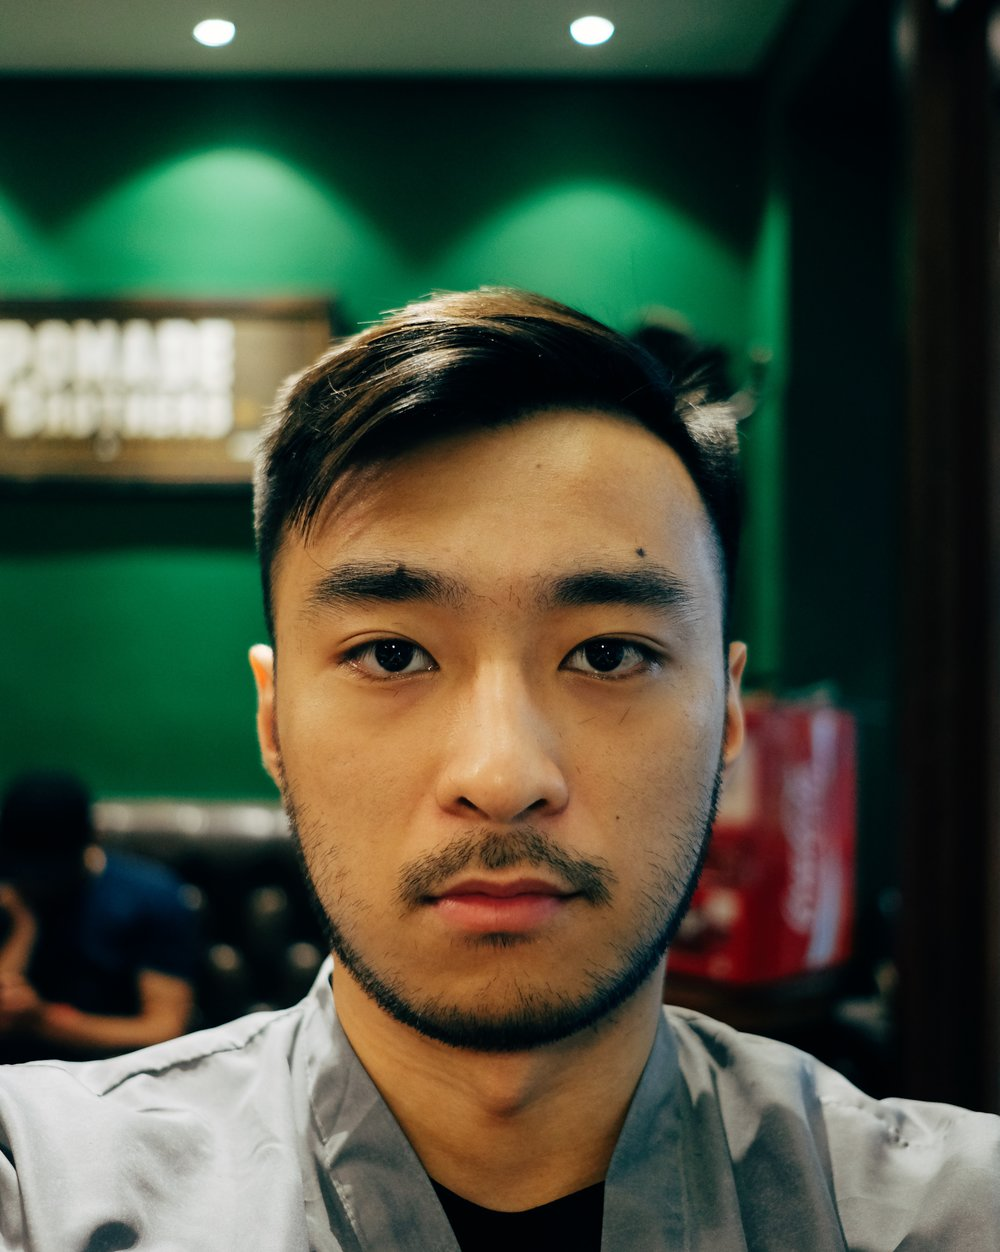 After (but before styling with Pomade)